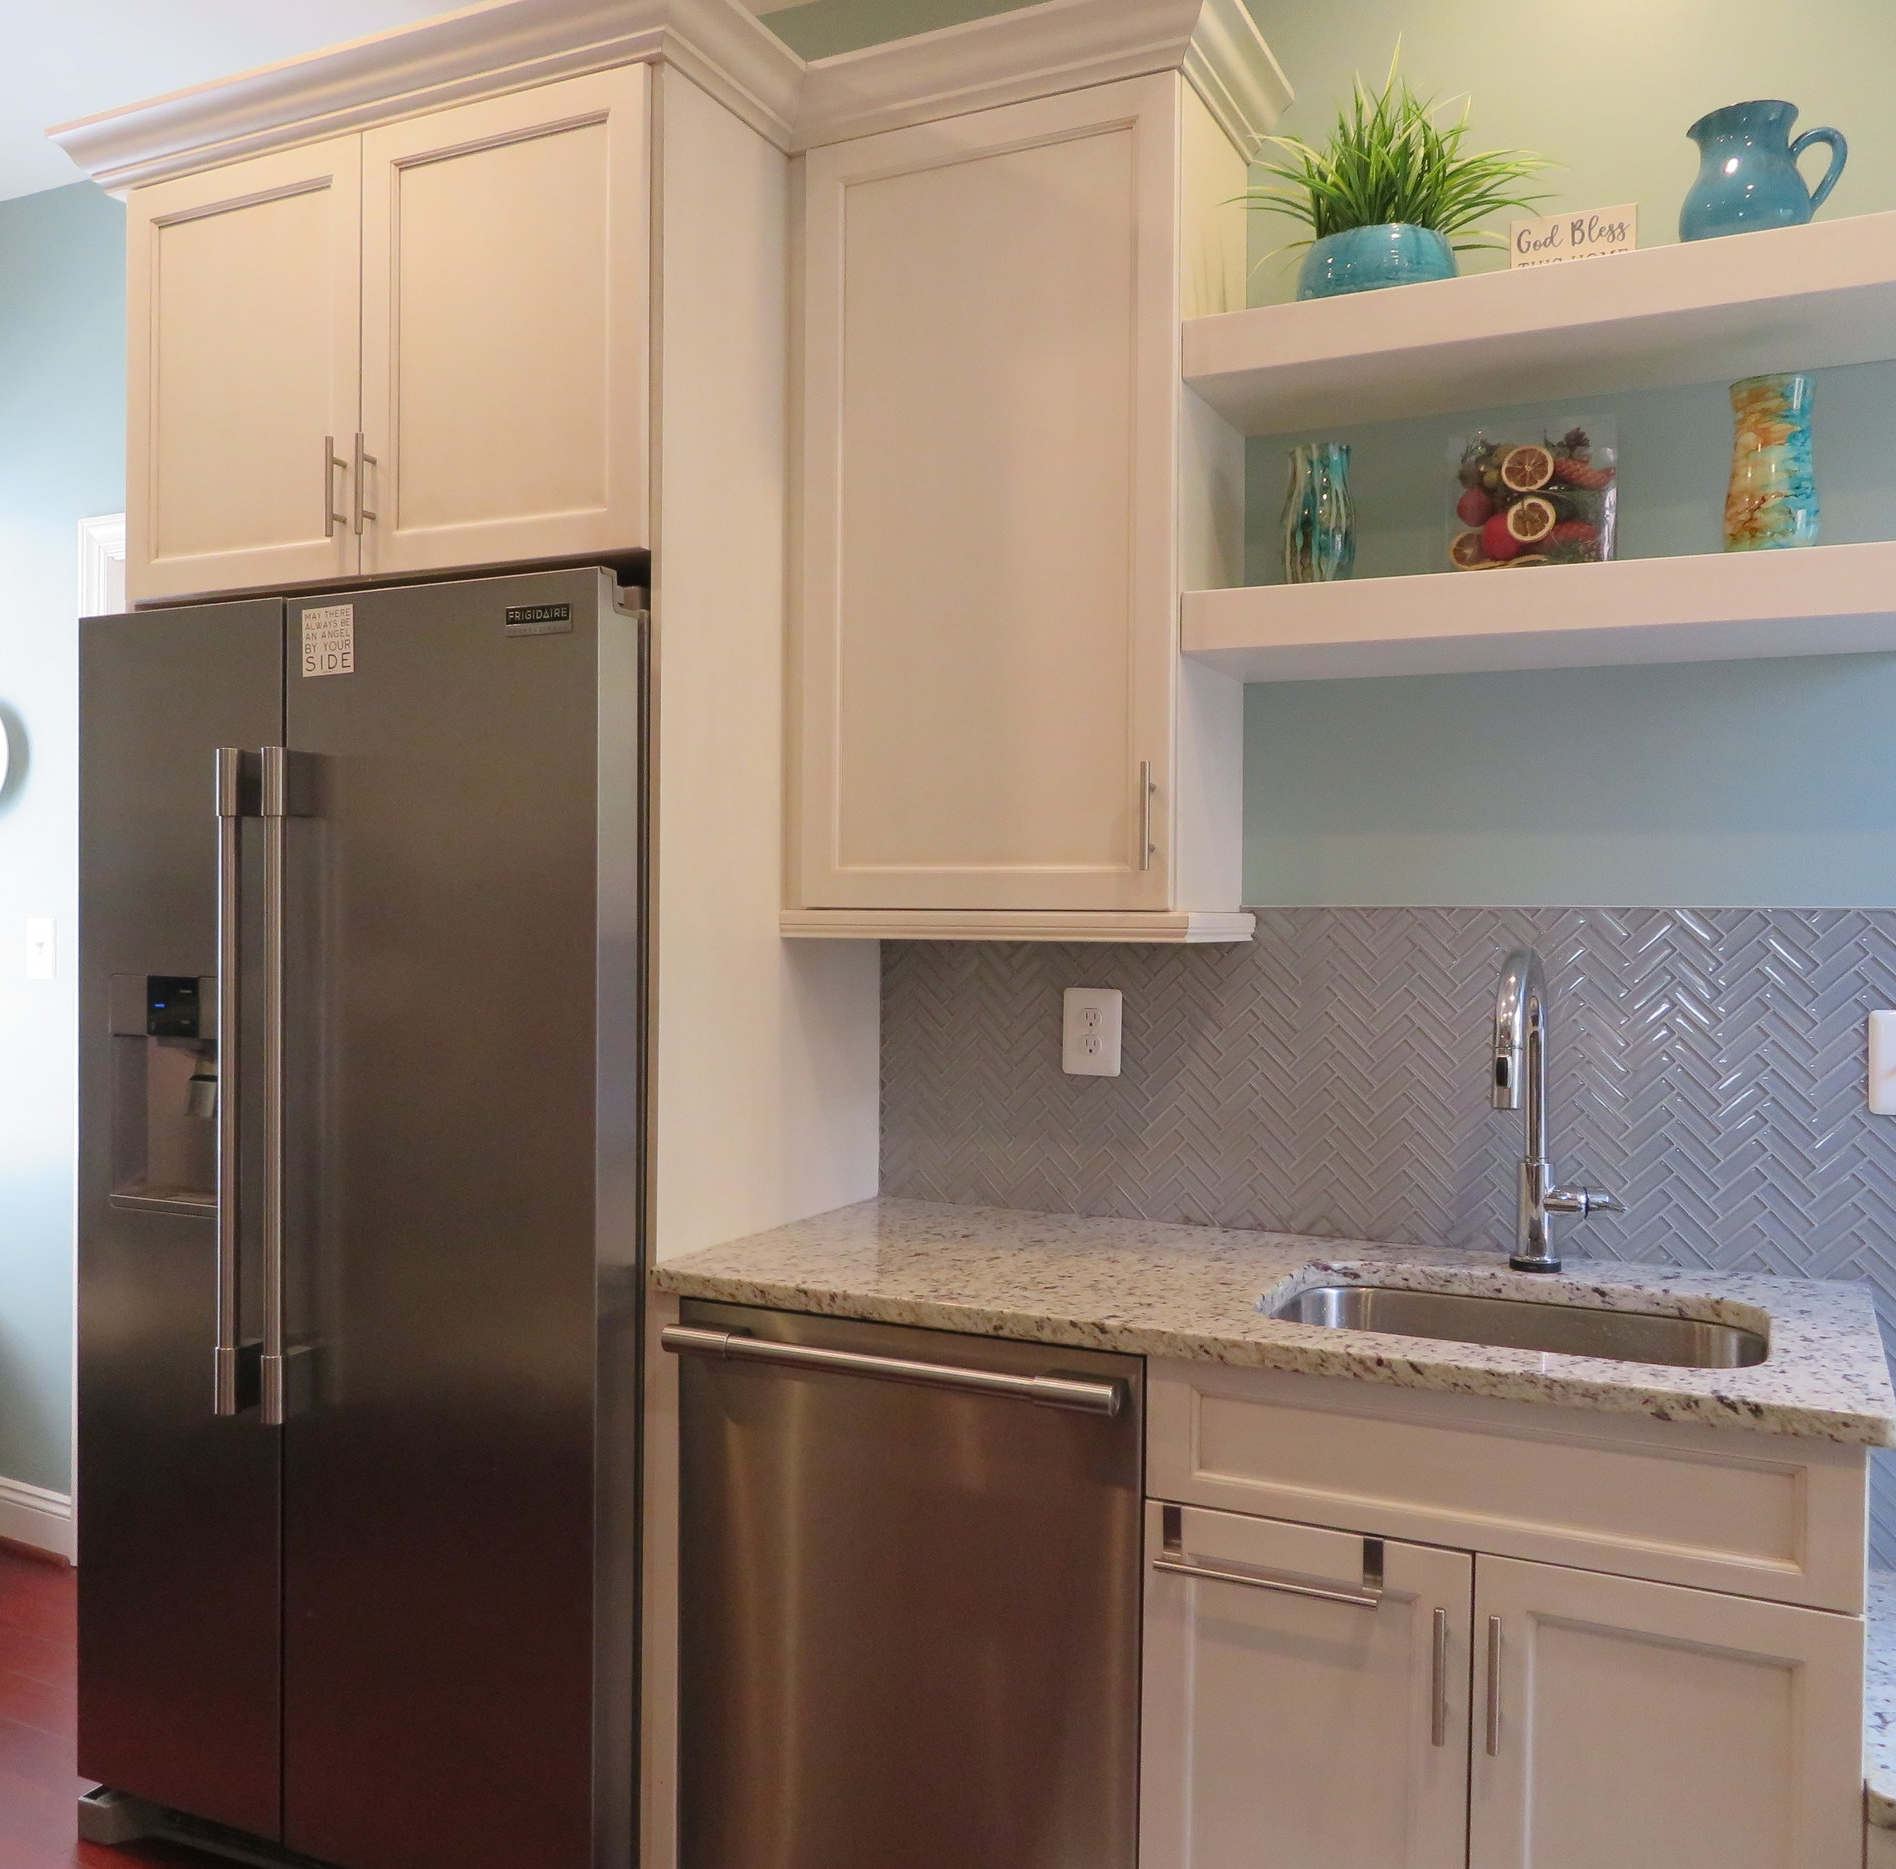 custom cabinetry, quality countertops, and modern fixtures -